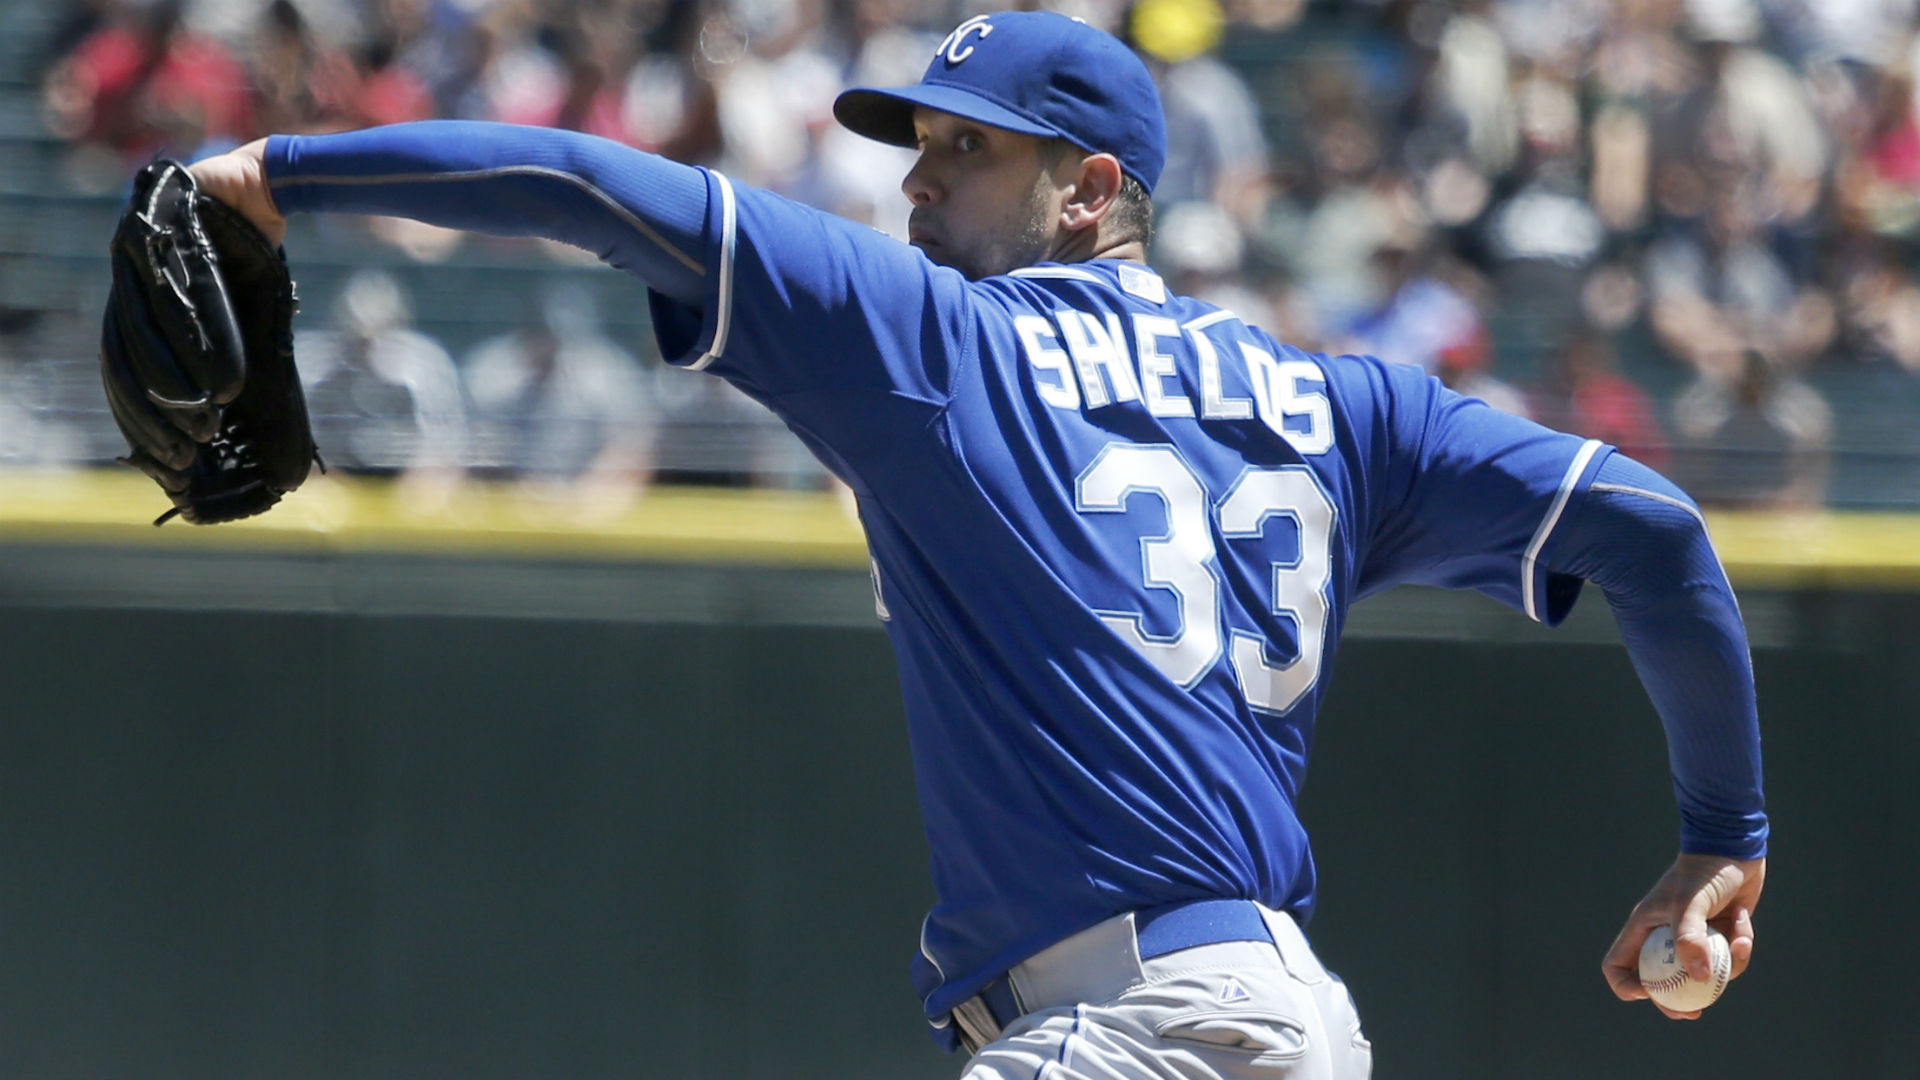 Fantasy baseball rankings: Tuesday's starting pitchers